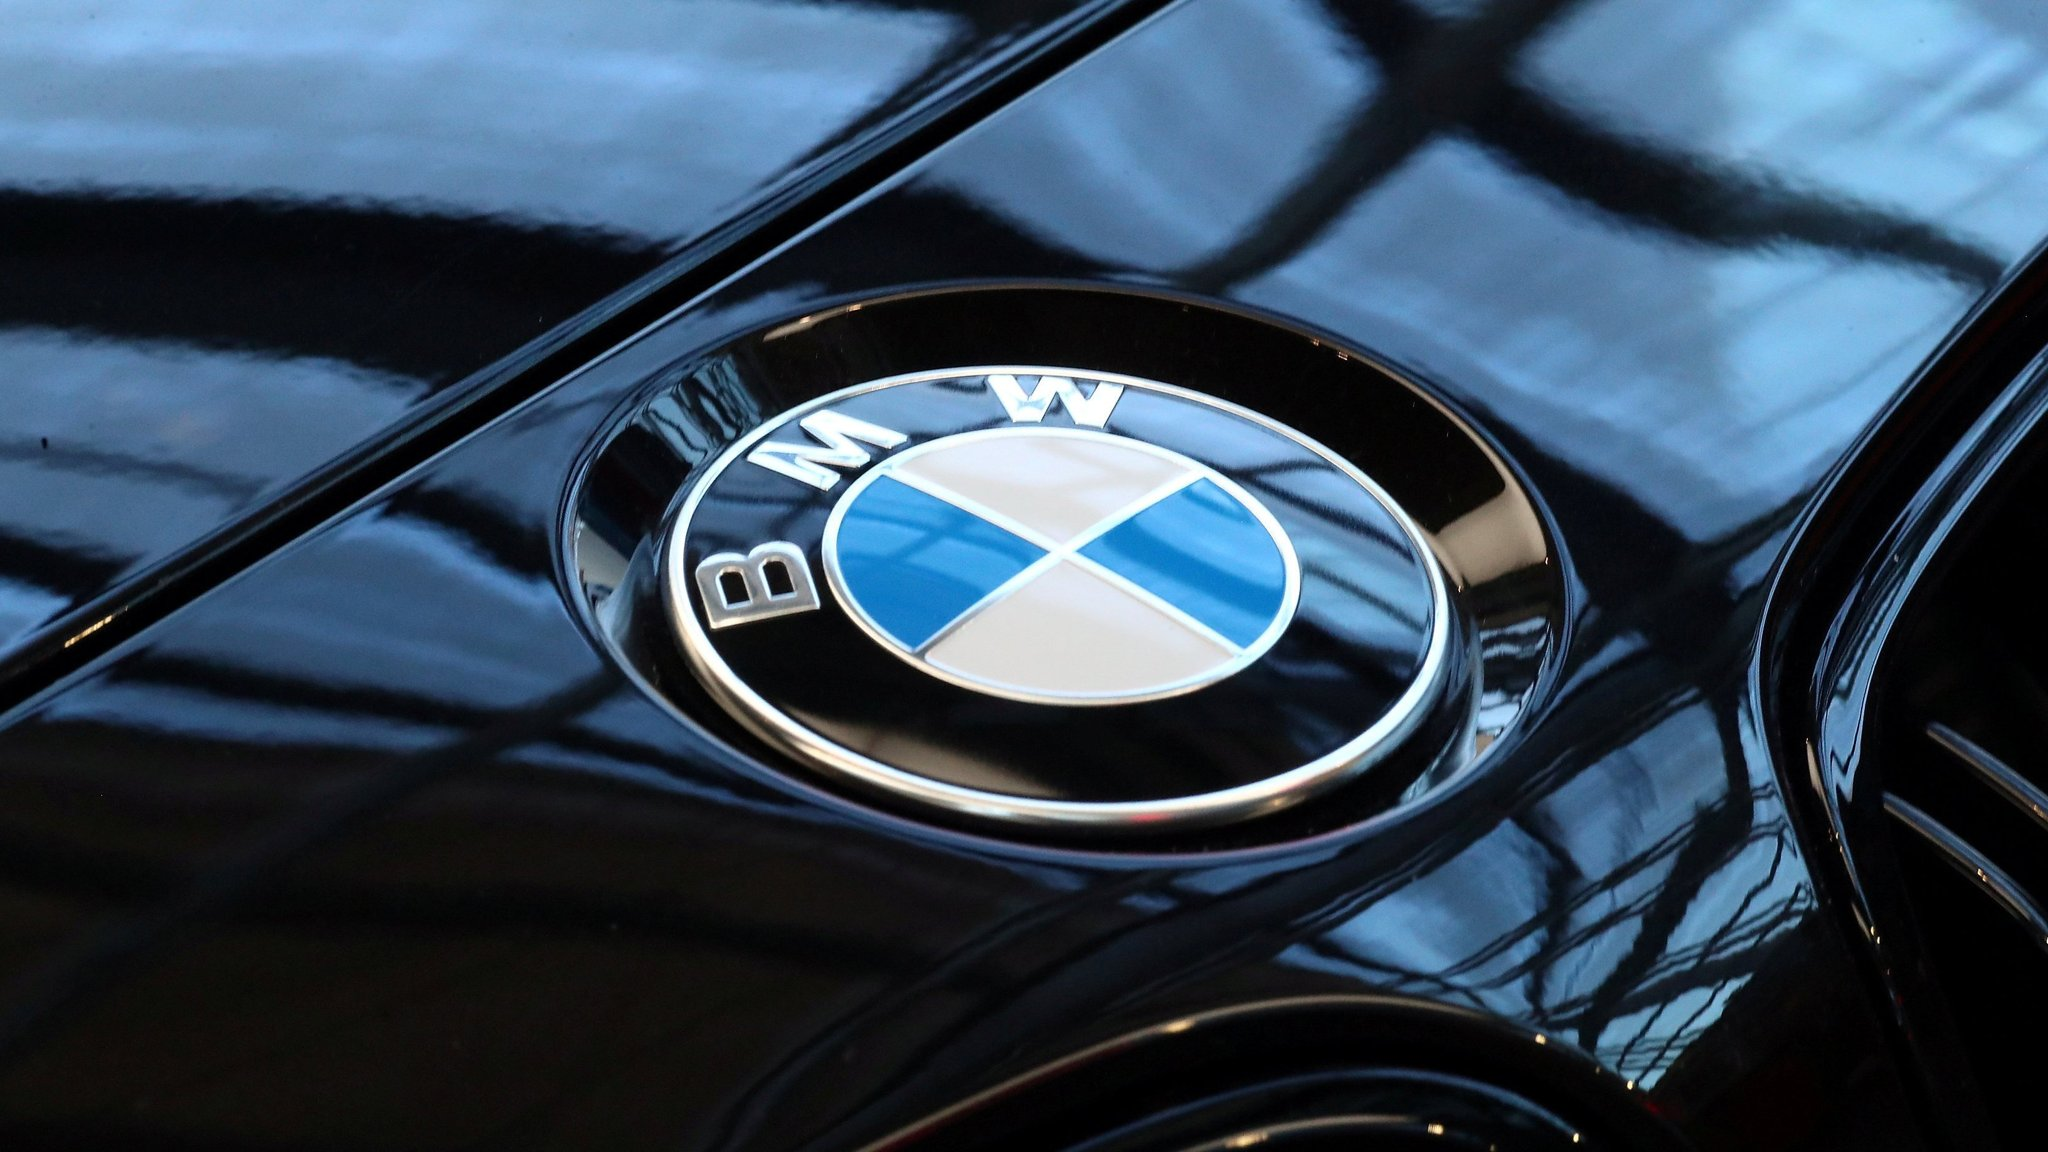 BMW looks to boost self-driving tech with Tencent venture